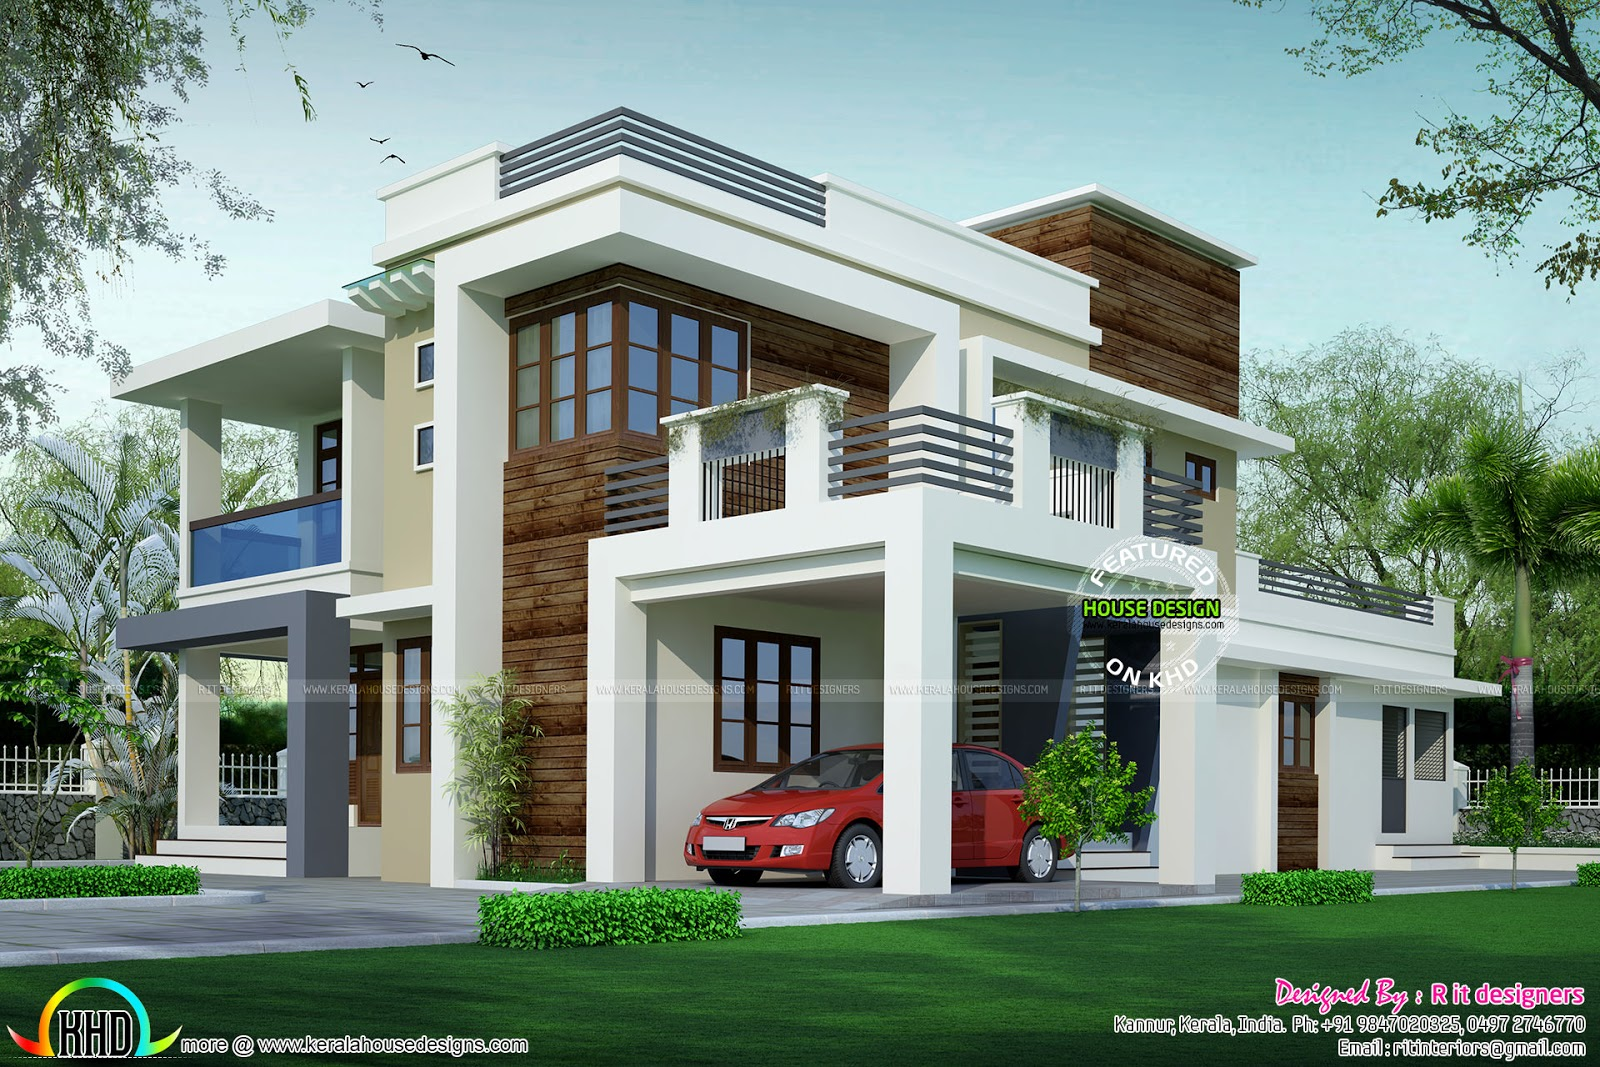 House design contemporary model kerala home design and for Homes models and plans